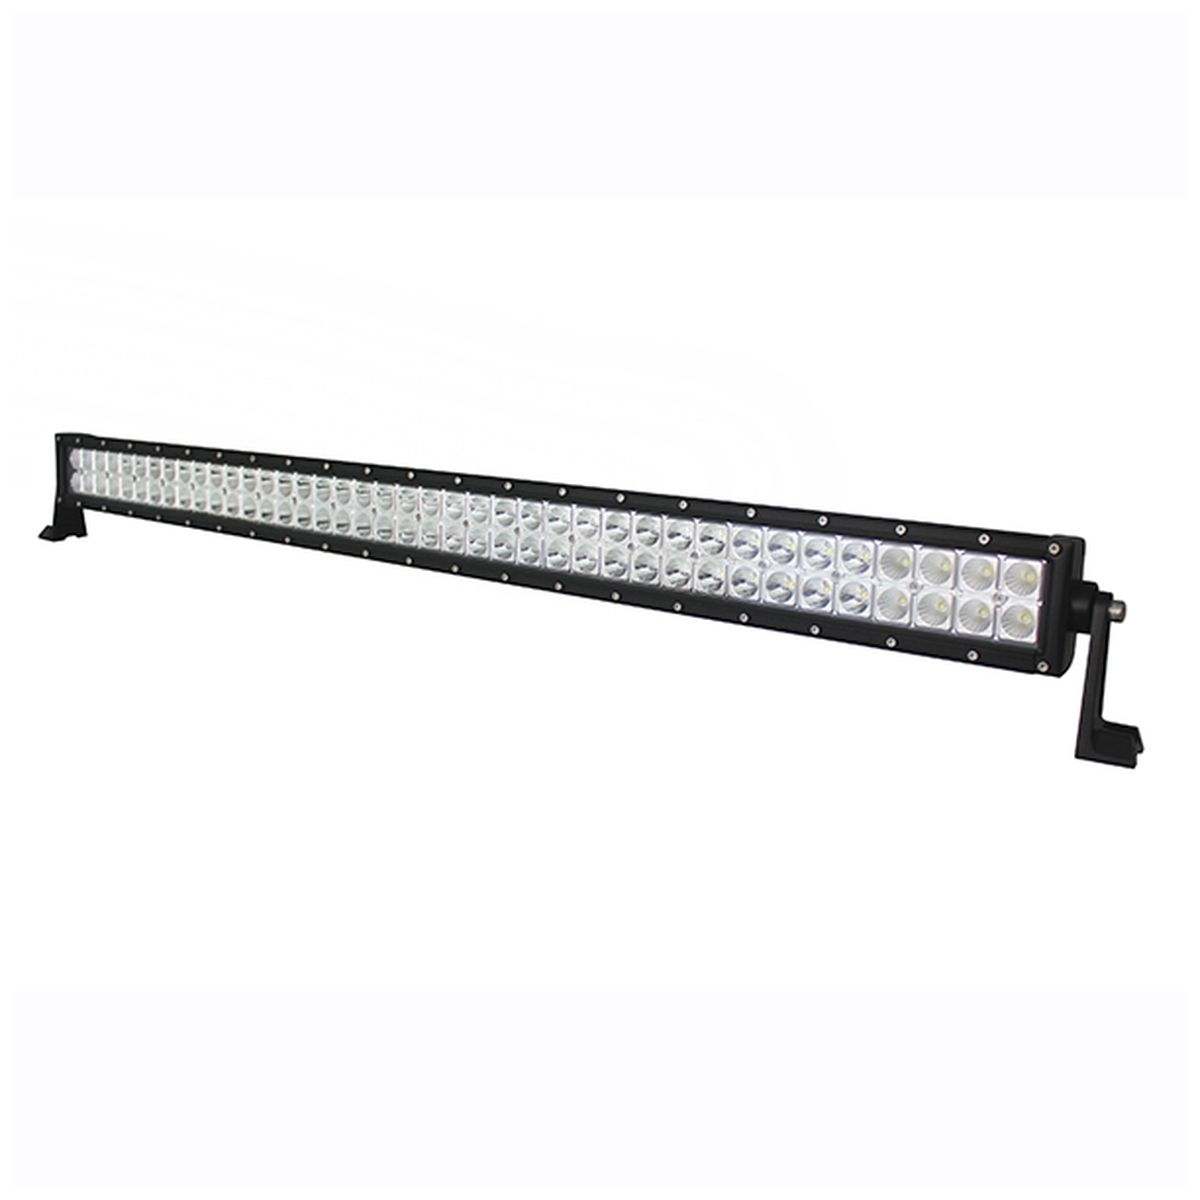 LED-ajovalopaneeli LedStore 240W 6000K IP68